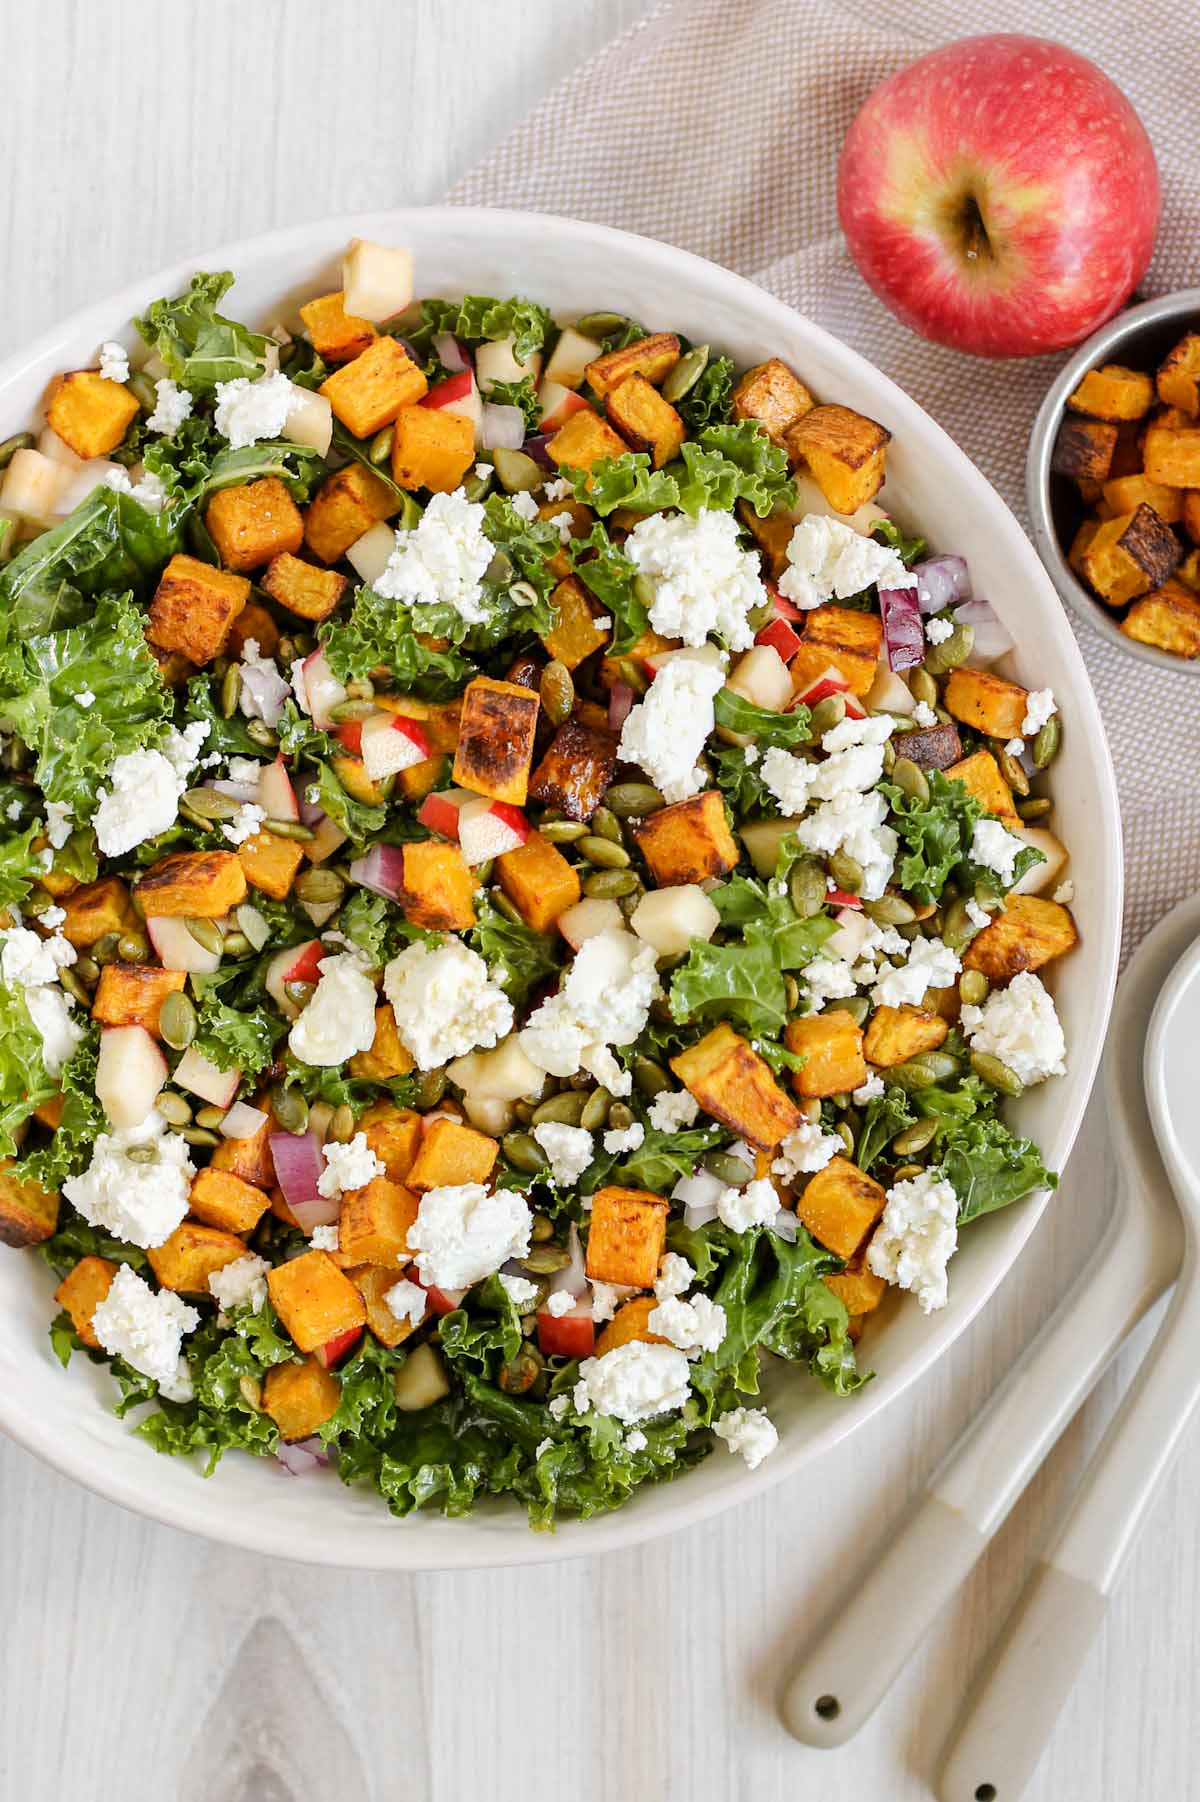 Kale salad with butternut squash and goat cheese in a large serving bowl.